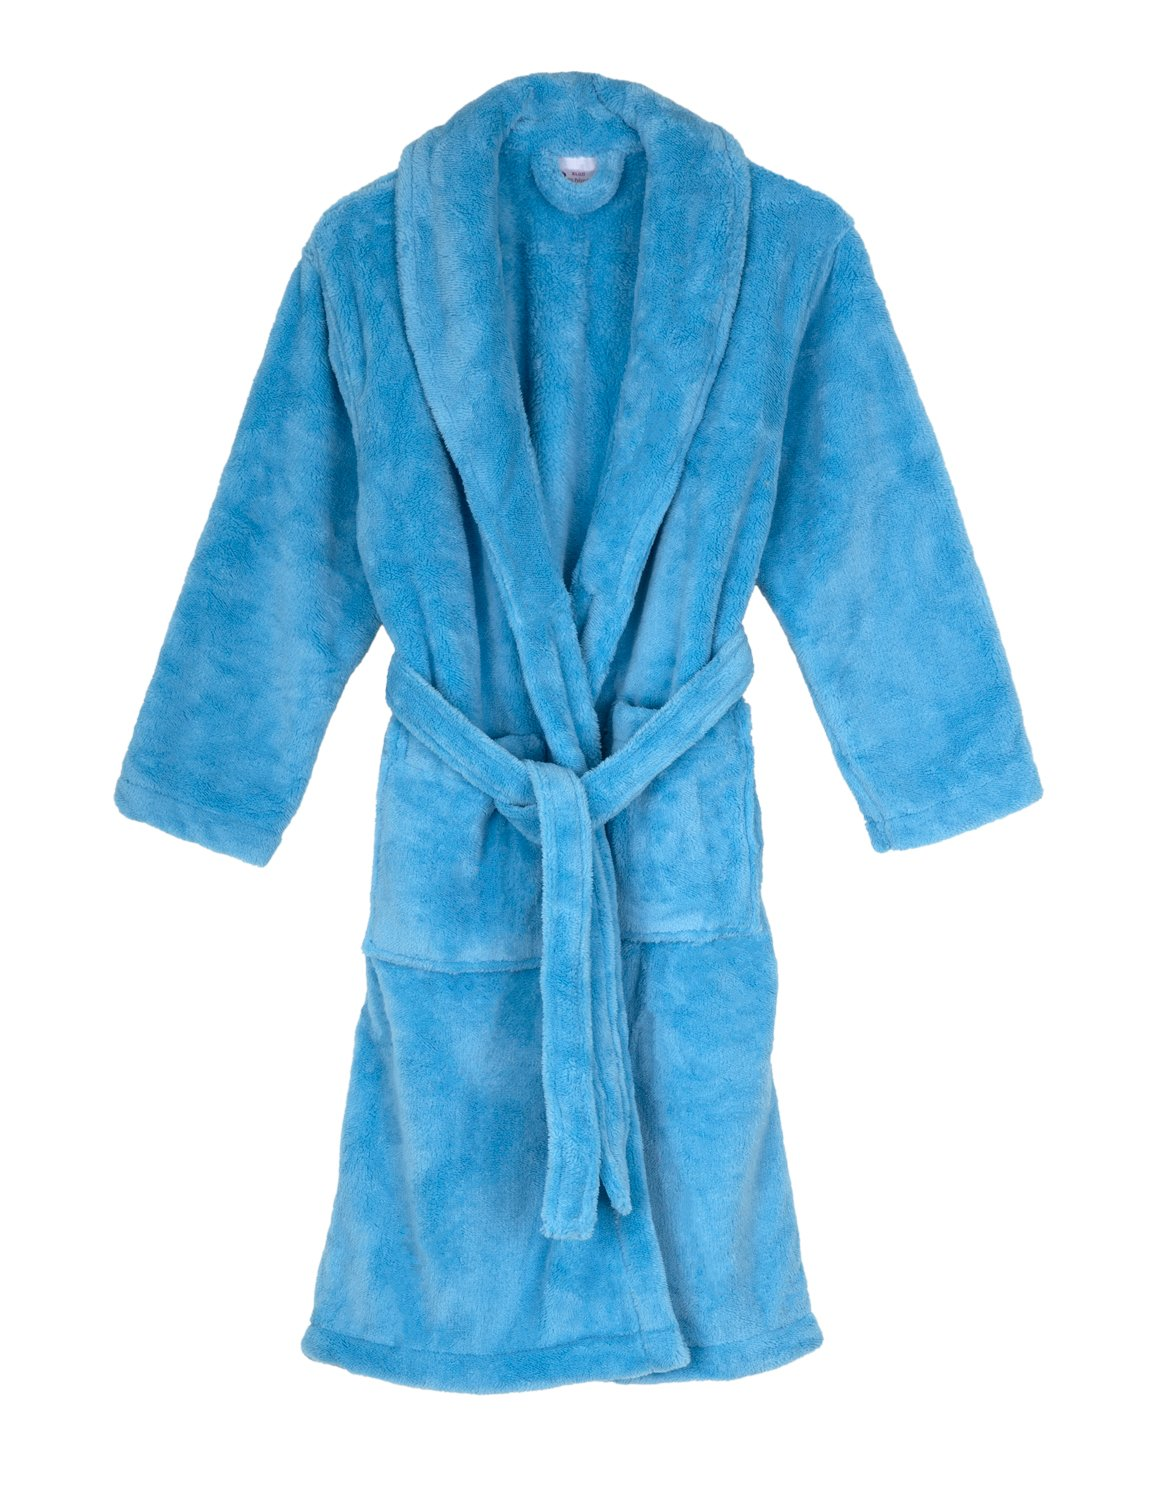 TowelSelections Little Girls' Robe, Kids Plush Shawl Fleece Bathrobe Size 6 Air Blue